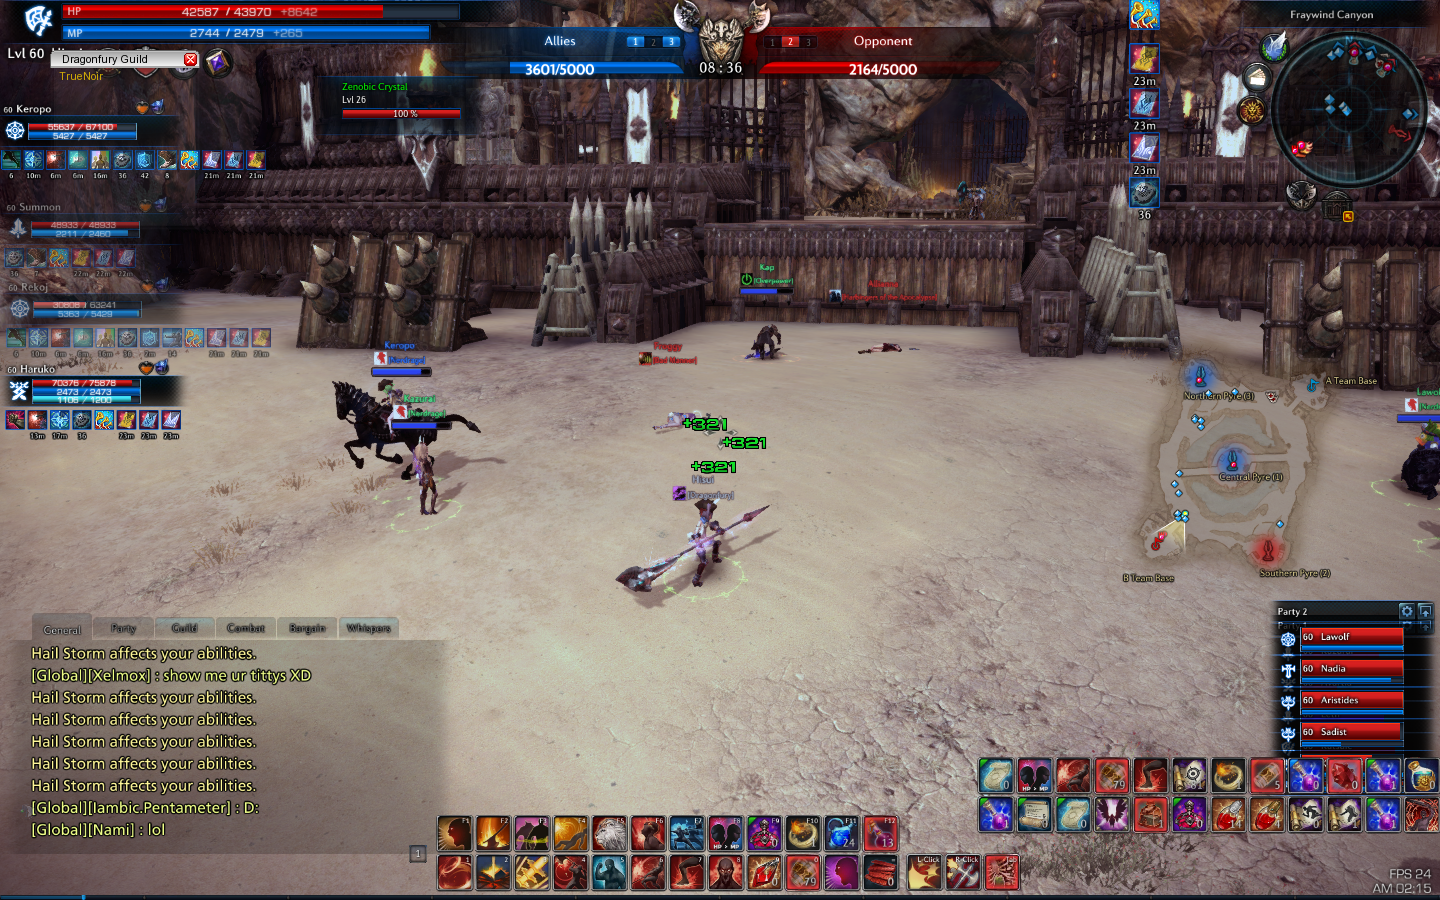 All in all, private servers for mmorpgs are most likely so popular because of their free nature